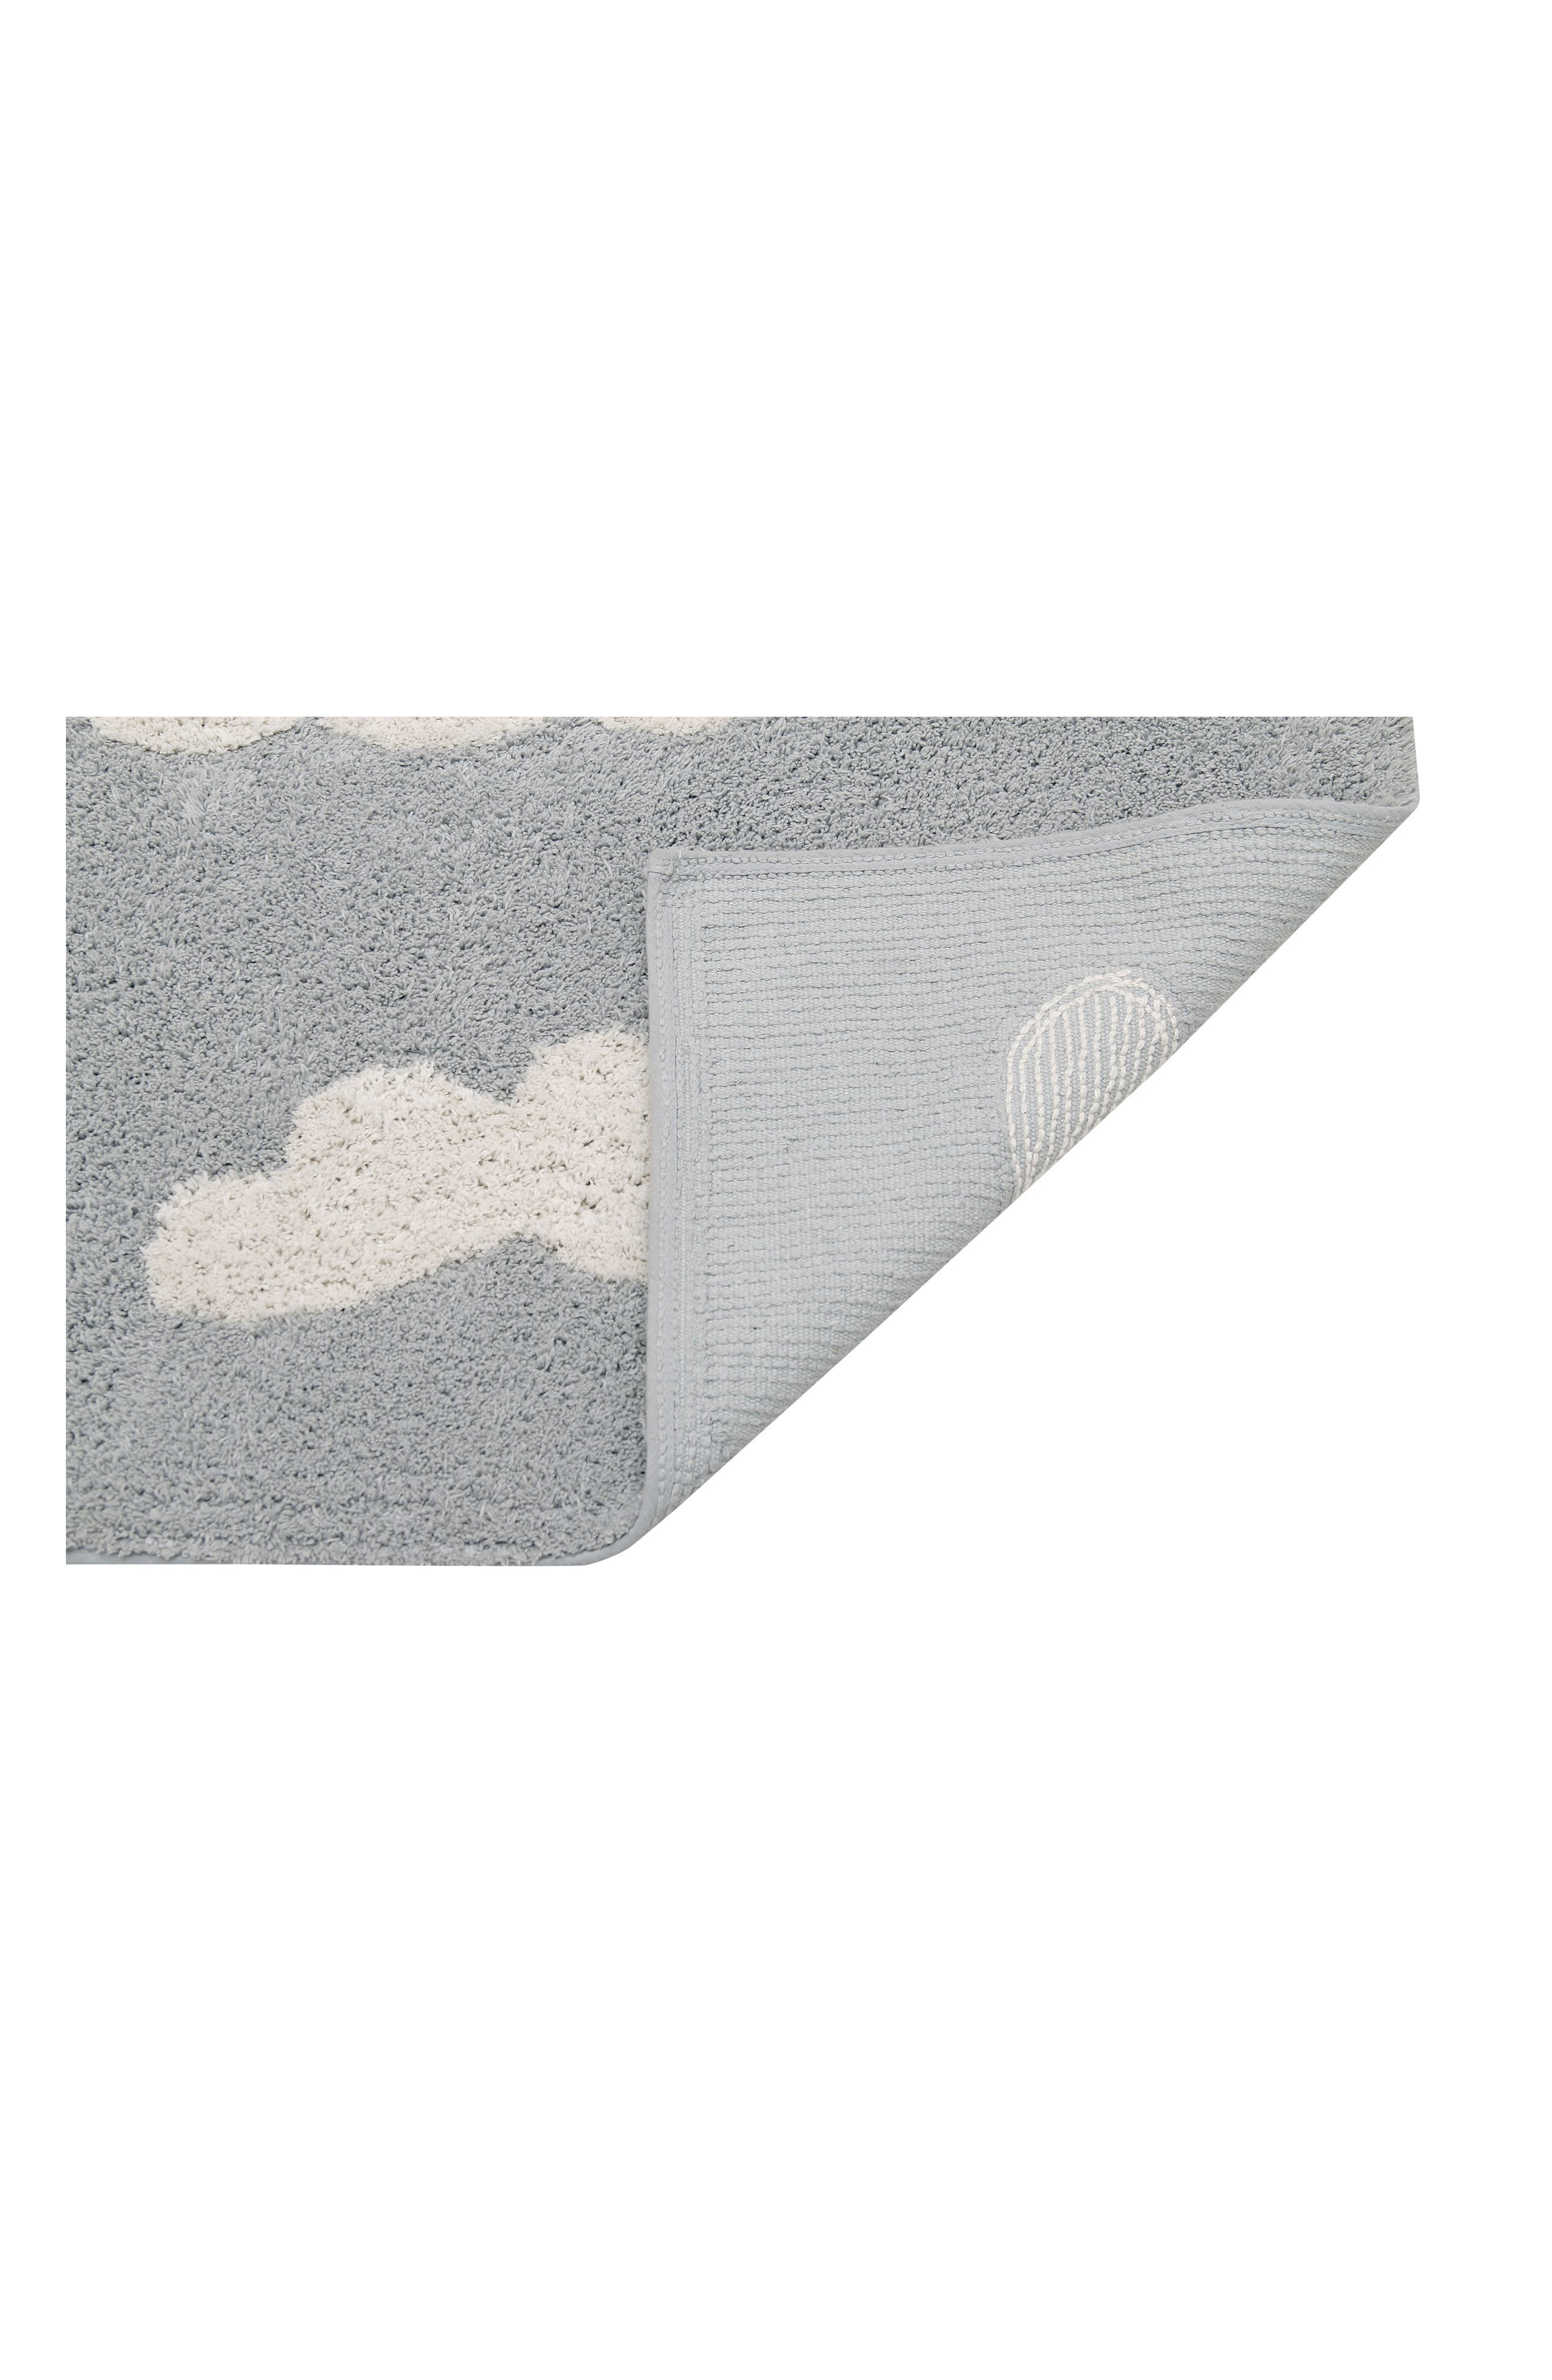 Clouds Rug,                             Alternate thumbnail 3, color,                             CLOUDS GREY